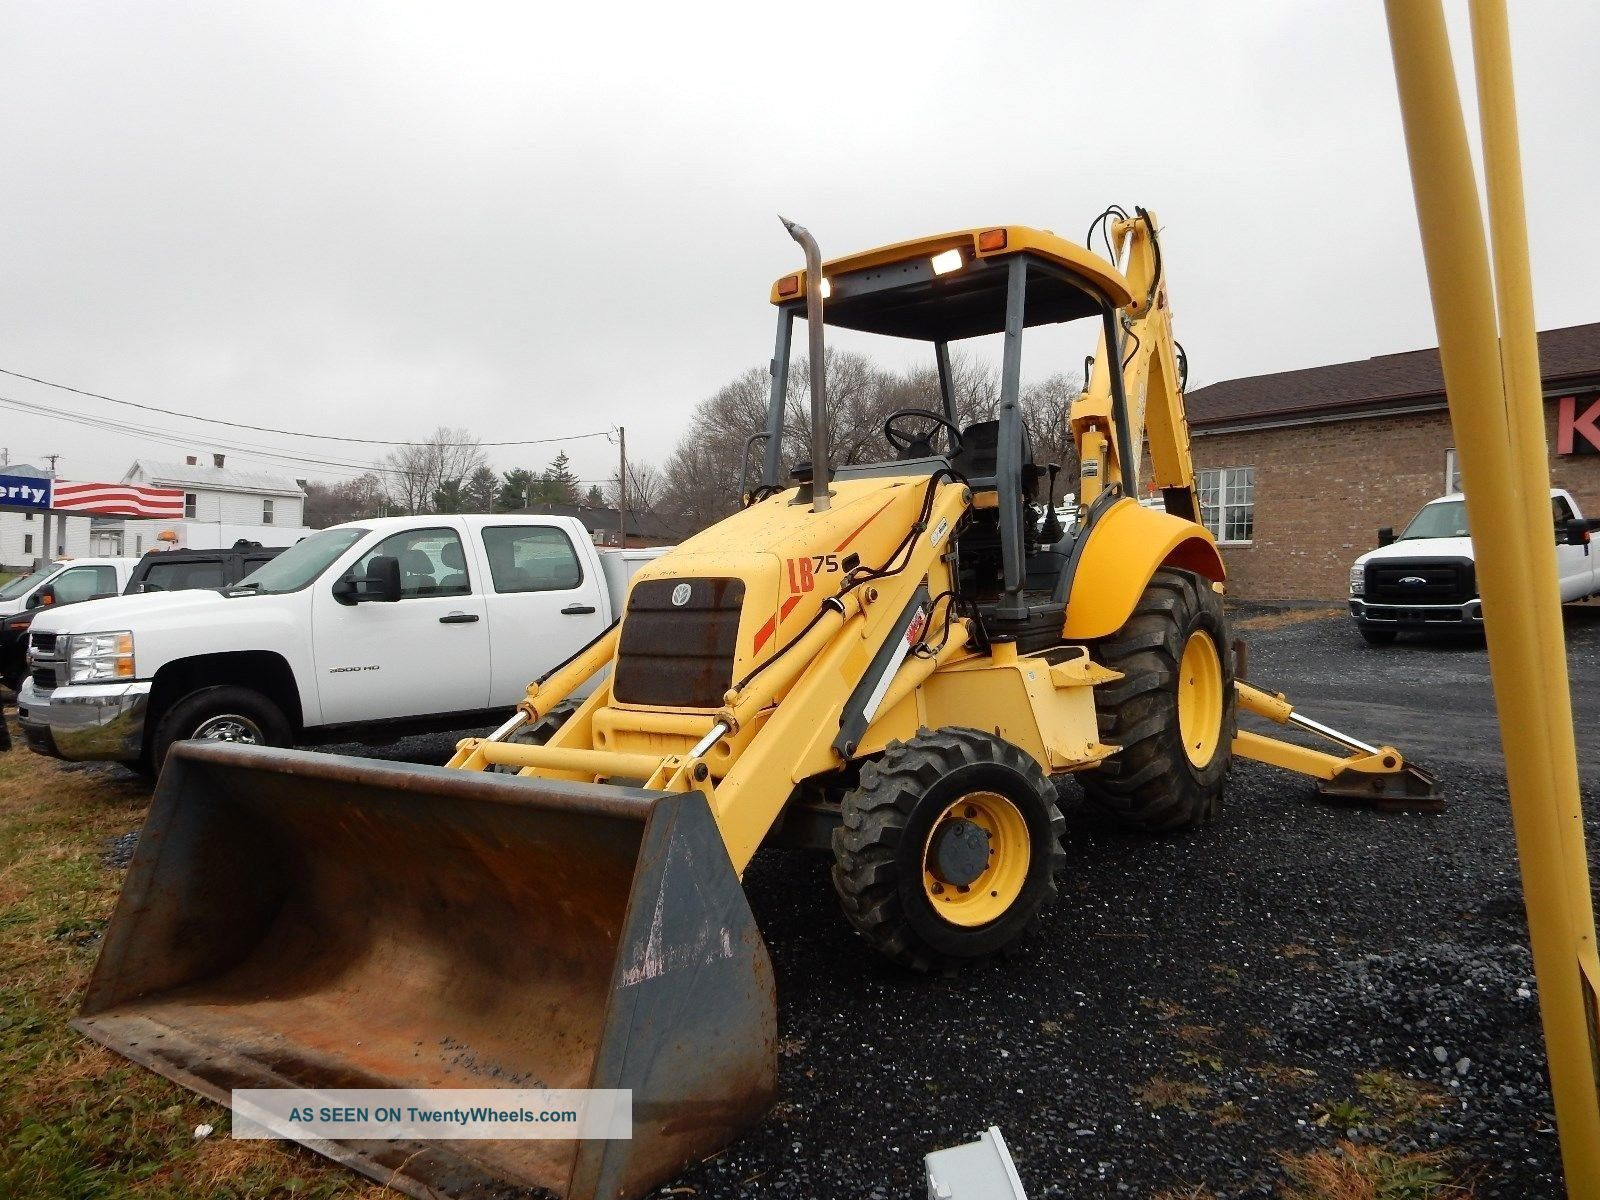 1999 Holland Lb75 4x4 Extendahoe Backhoe 75%+ Tires 2100 Hrs Well Maintained Backhoe Loaders photo